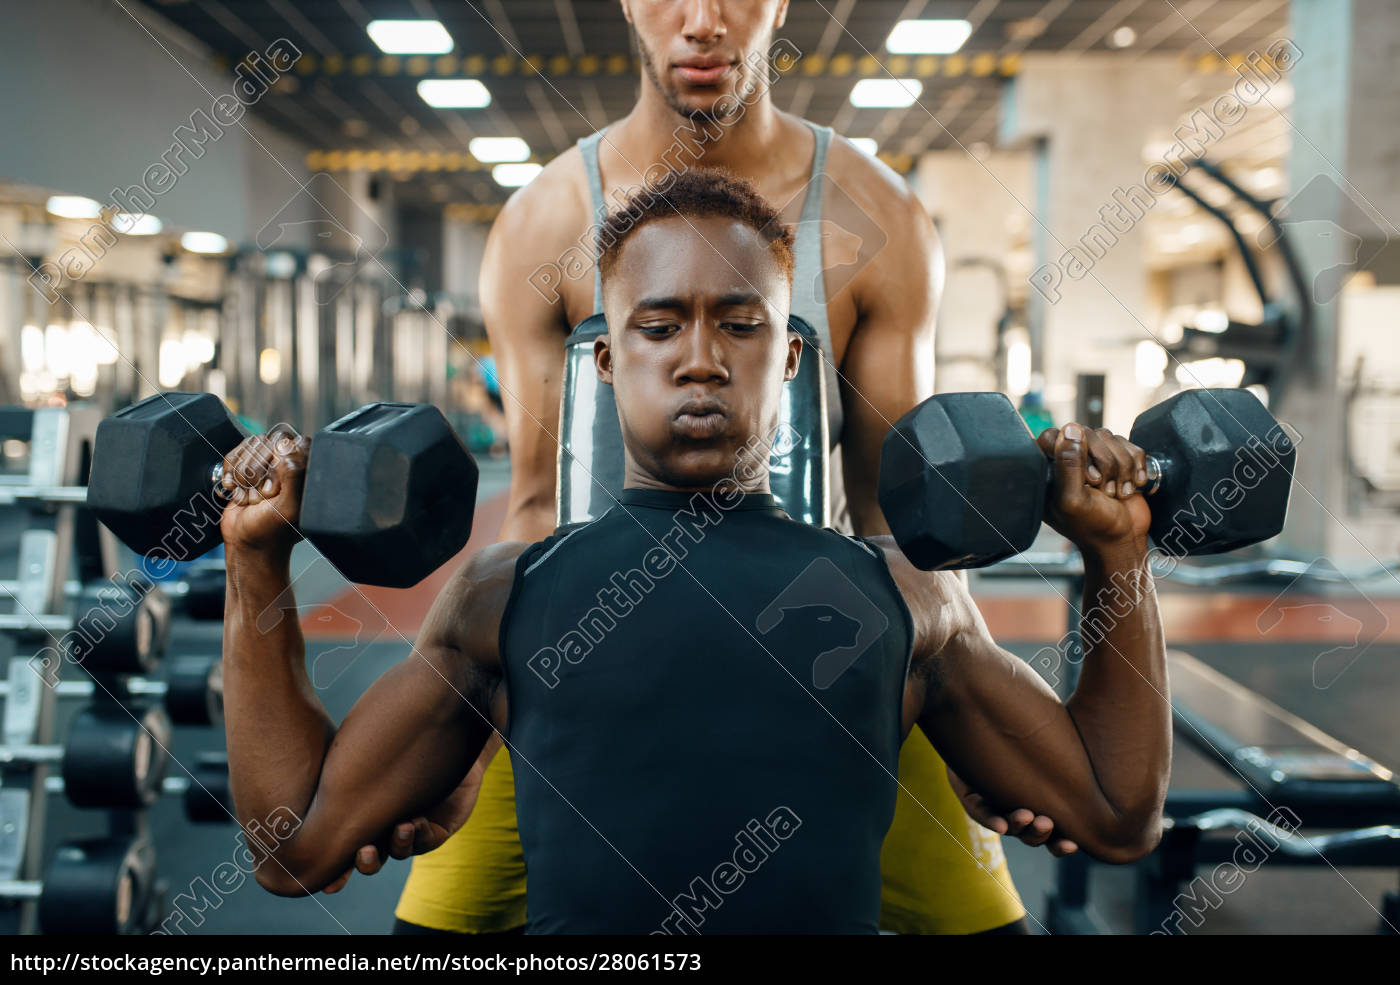 two, men, doing, exercise, with, dumbbells - 28061573